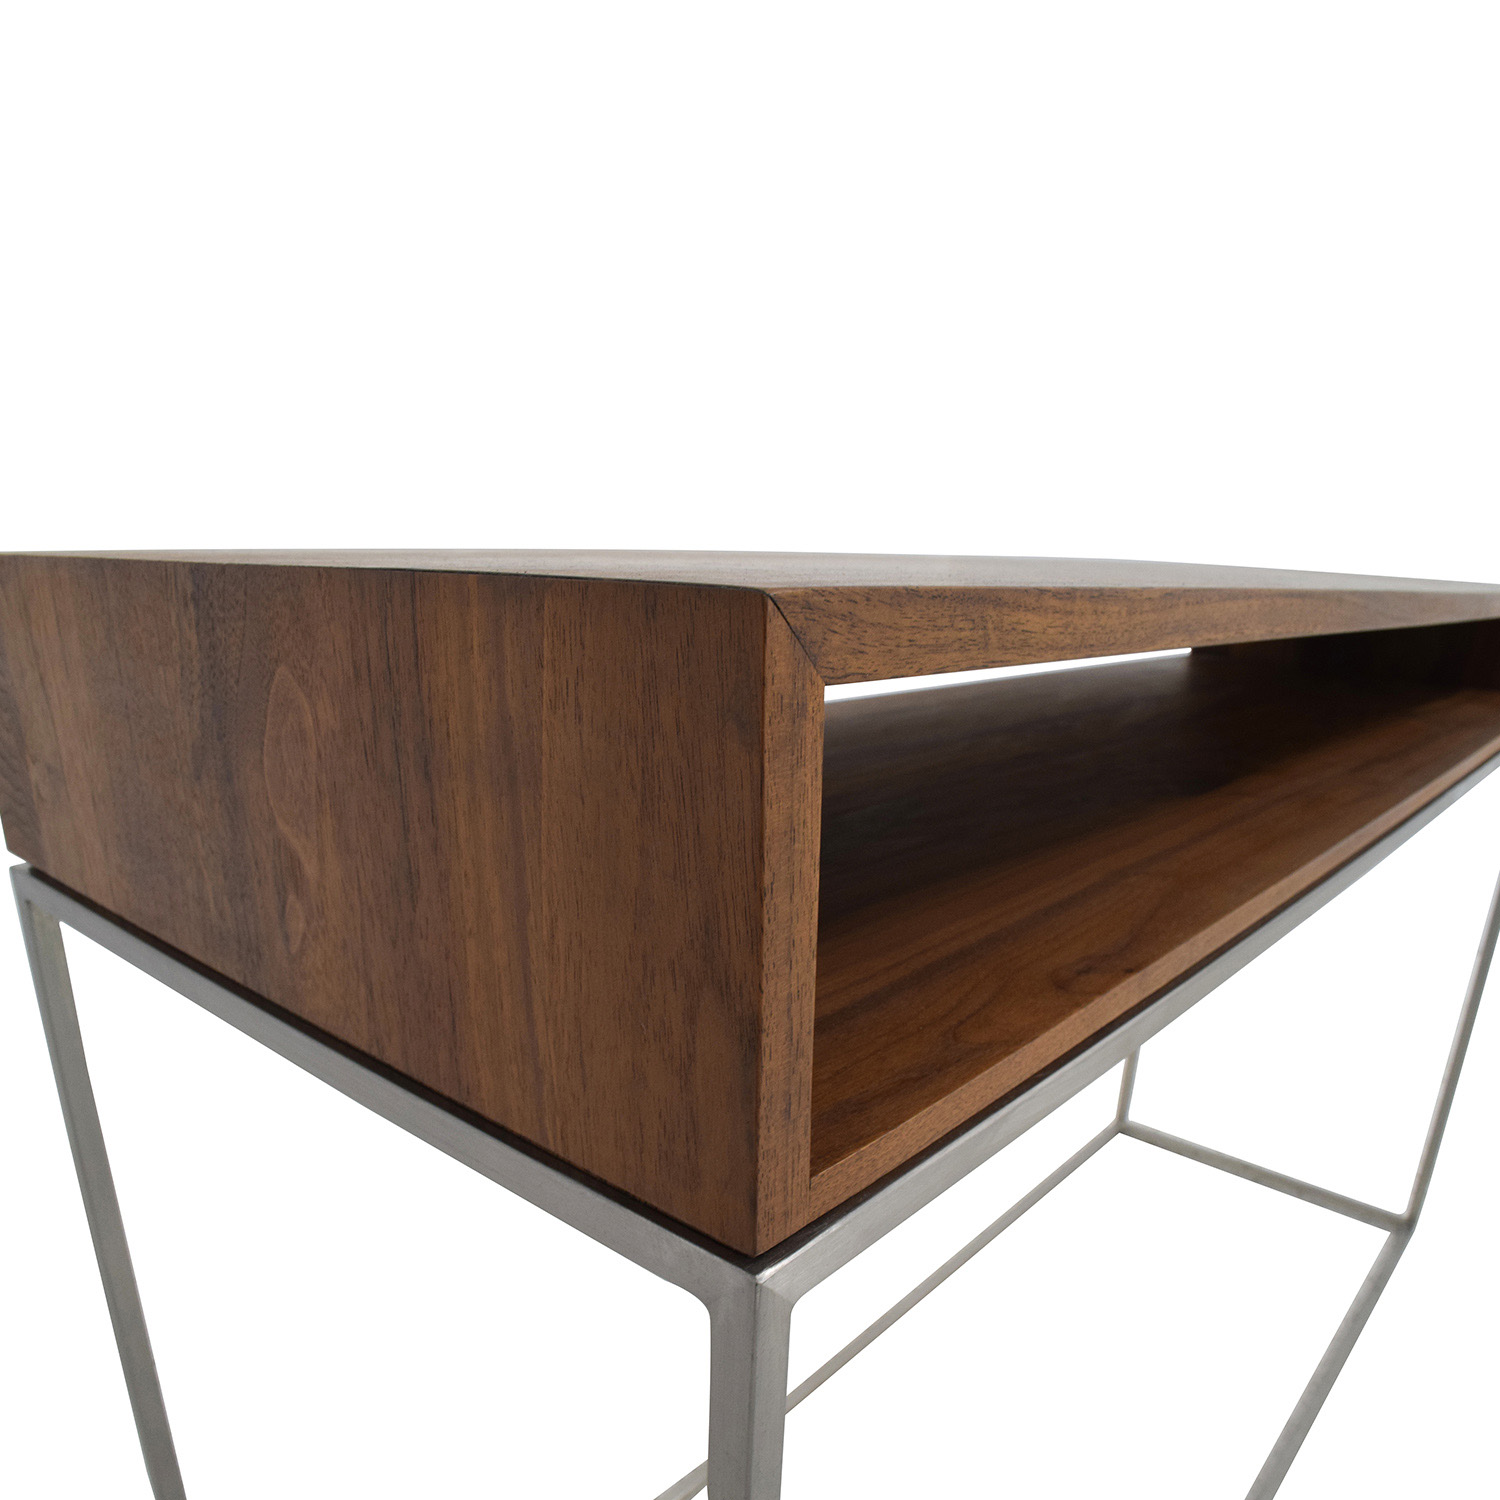 70 Off Cb2 Cb2 Wood And Metal Frame Console Table Tables